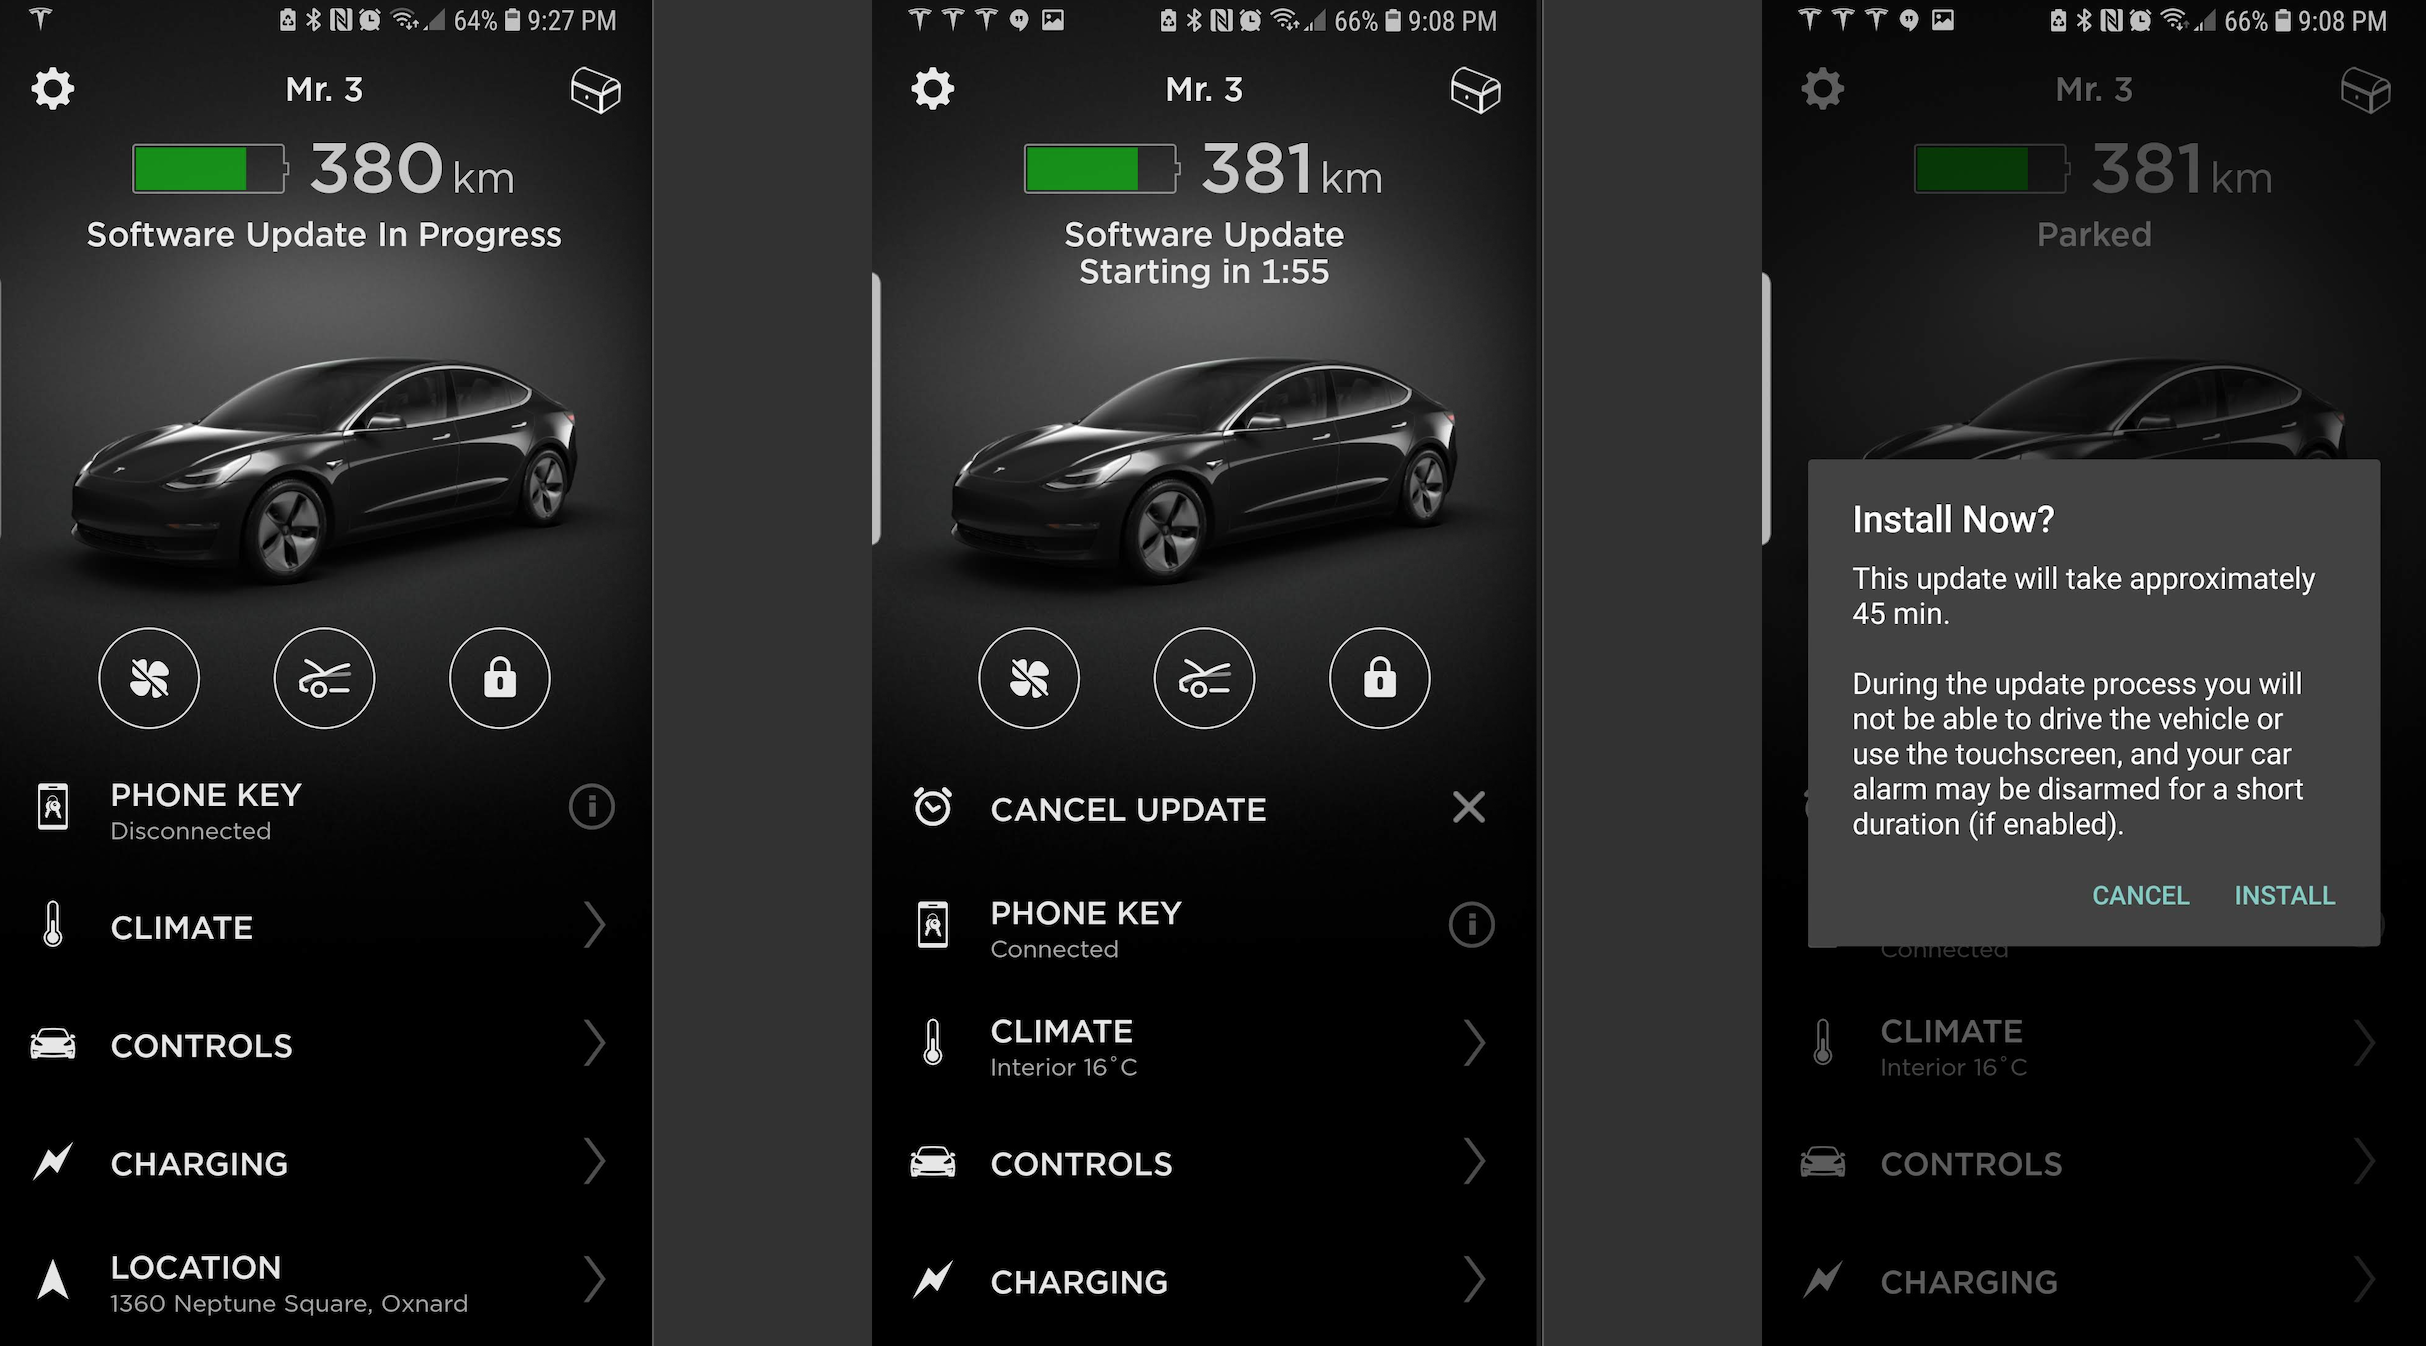 Tesla Owners Can Soon Request Service From The Tesla App